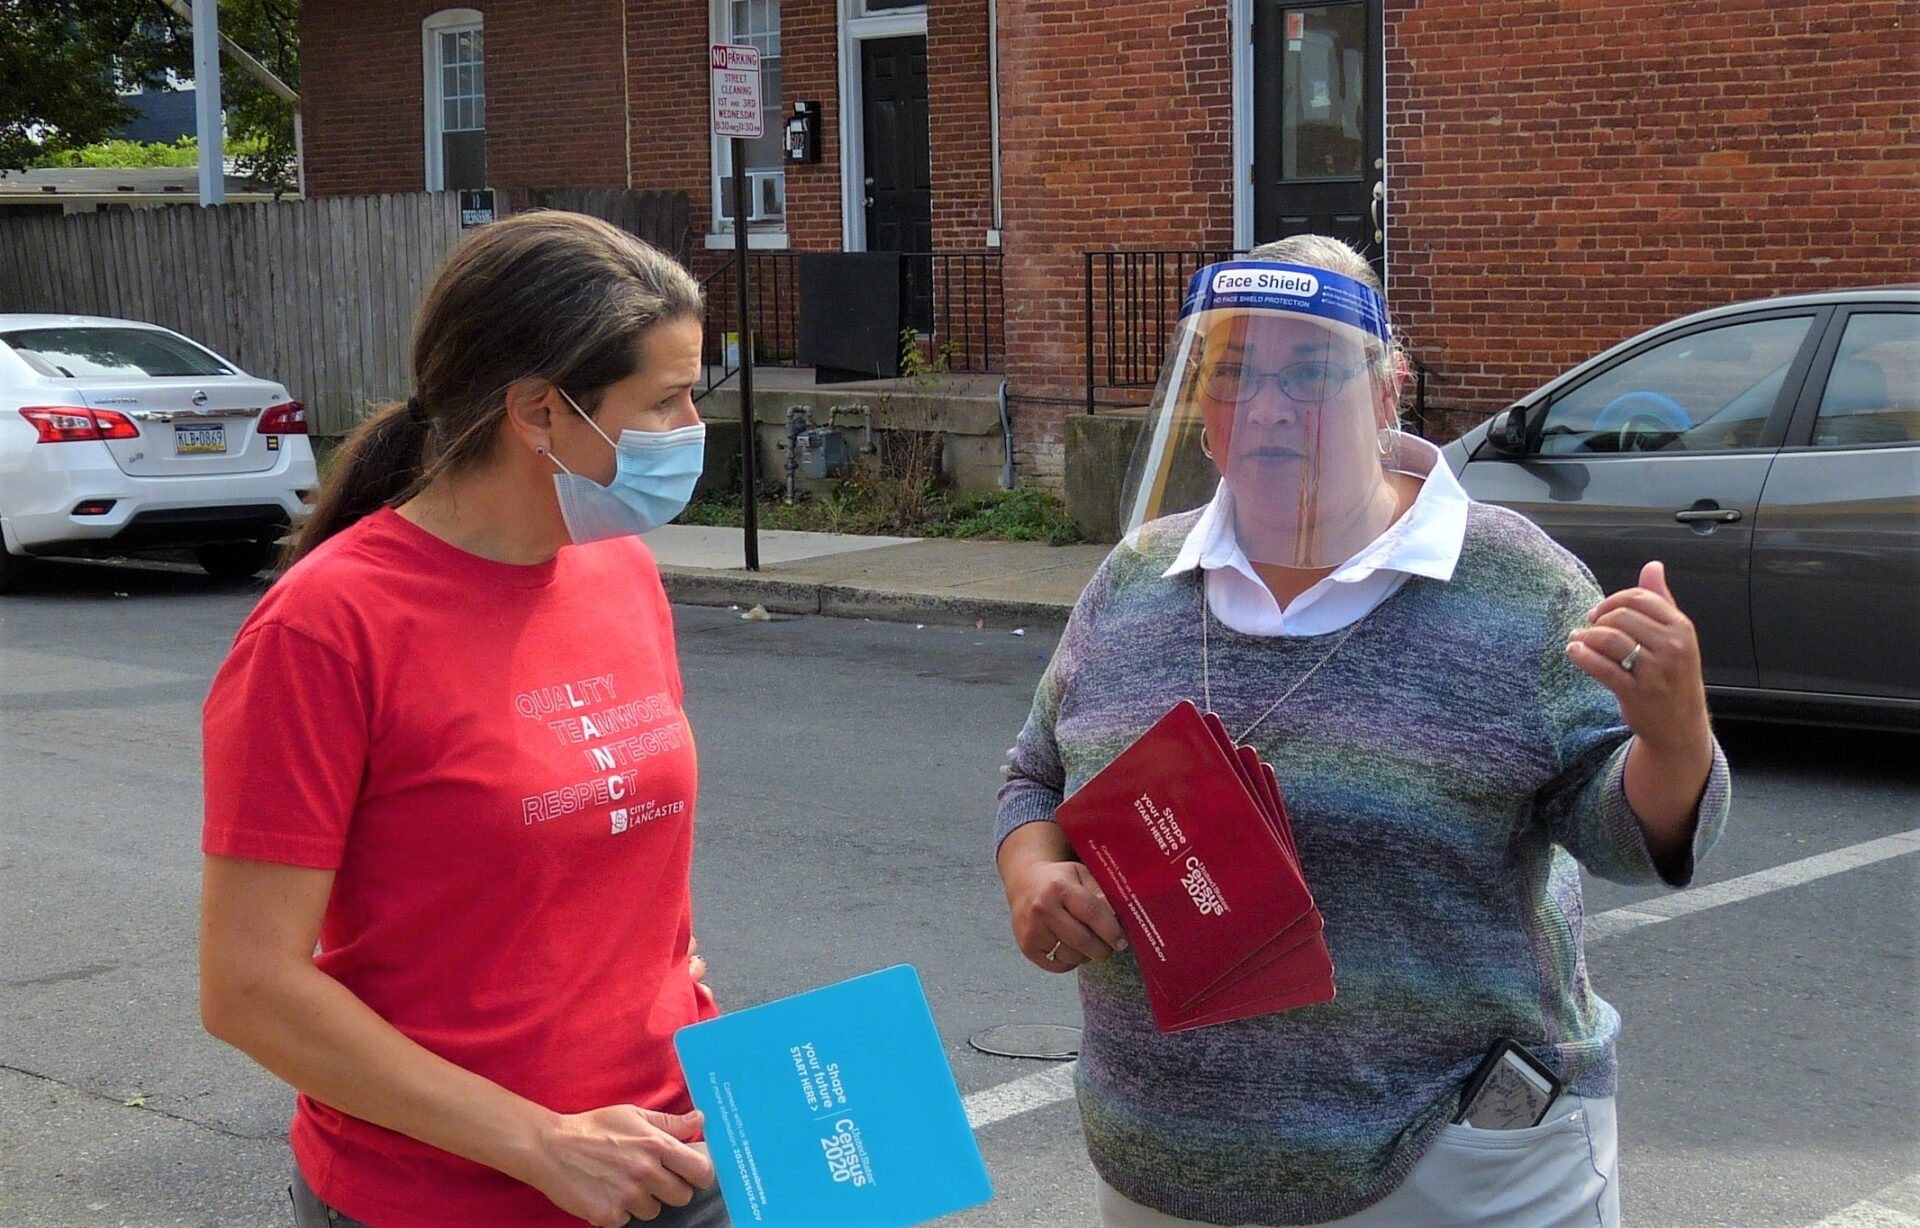 Lancaster Mayor Danene Sorace chats with volunteer Lori Pagan during a Census Emergency Day event at the corner of St. Joseph and New Dorwart streets in Lancaster on Friday, Sept. 25, 2020. (Photo: Tim Stuhldreher)